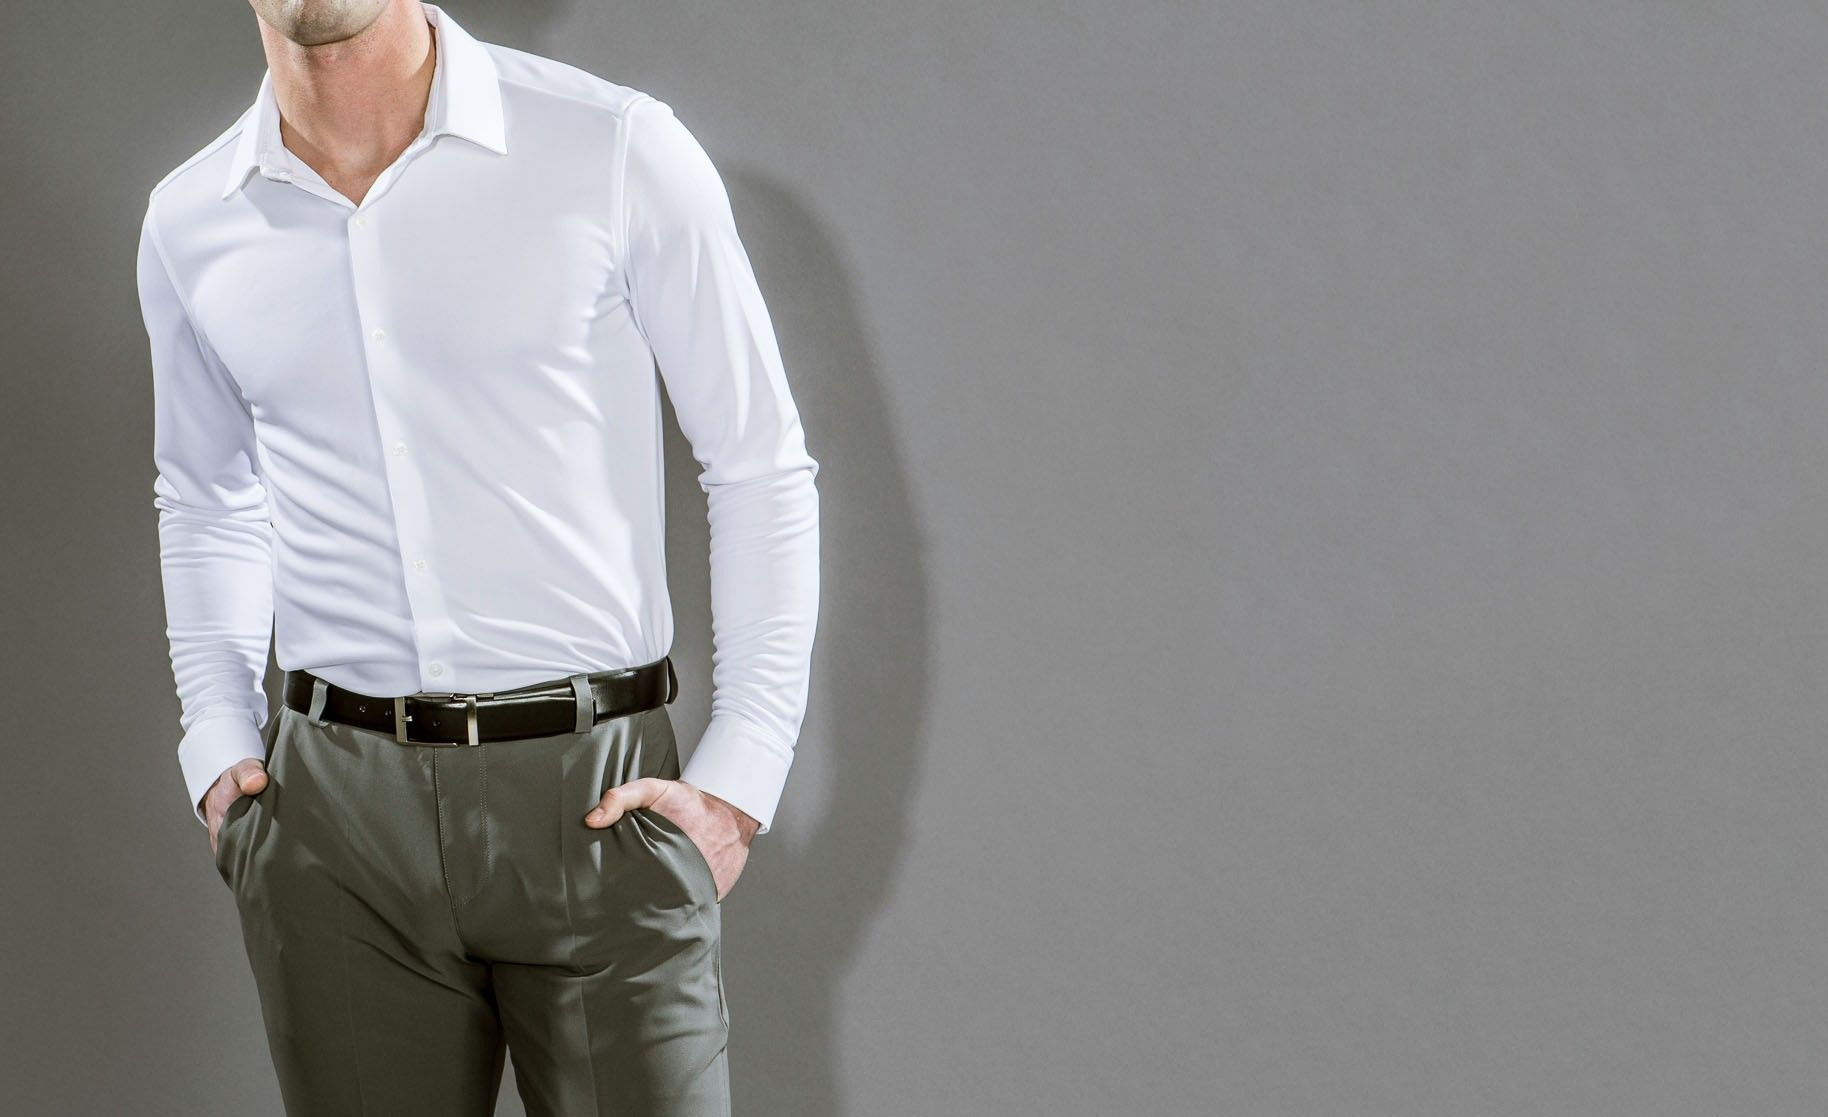 APOLLO 2 DRESS SHIRT. Designed from NASA tech to keep you cool and dry. Hot! Er, cool....